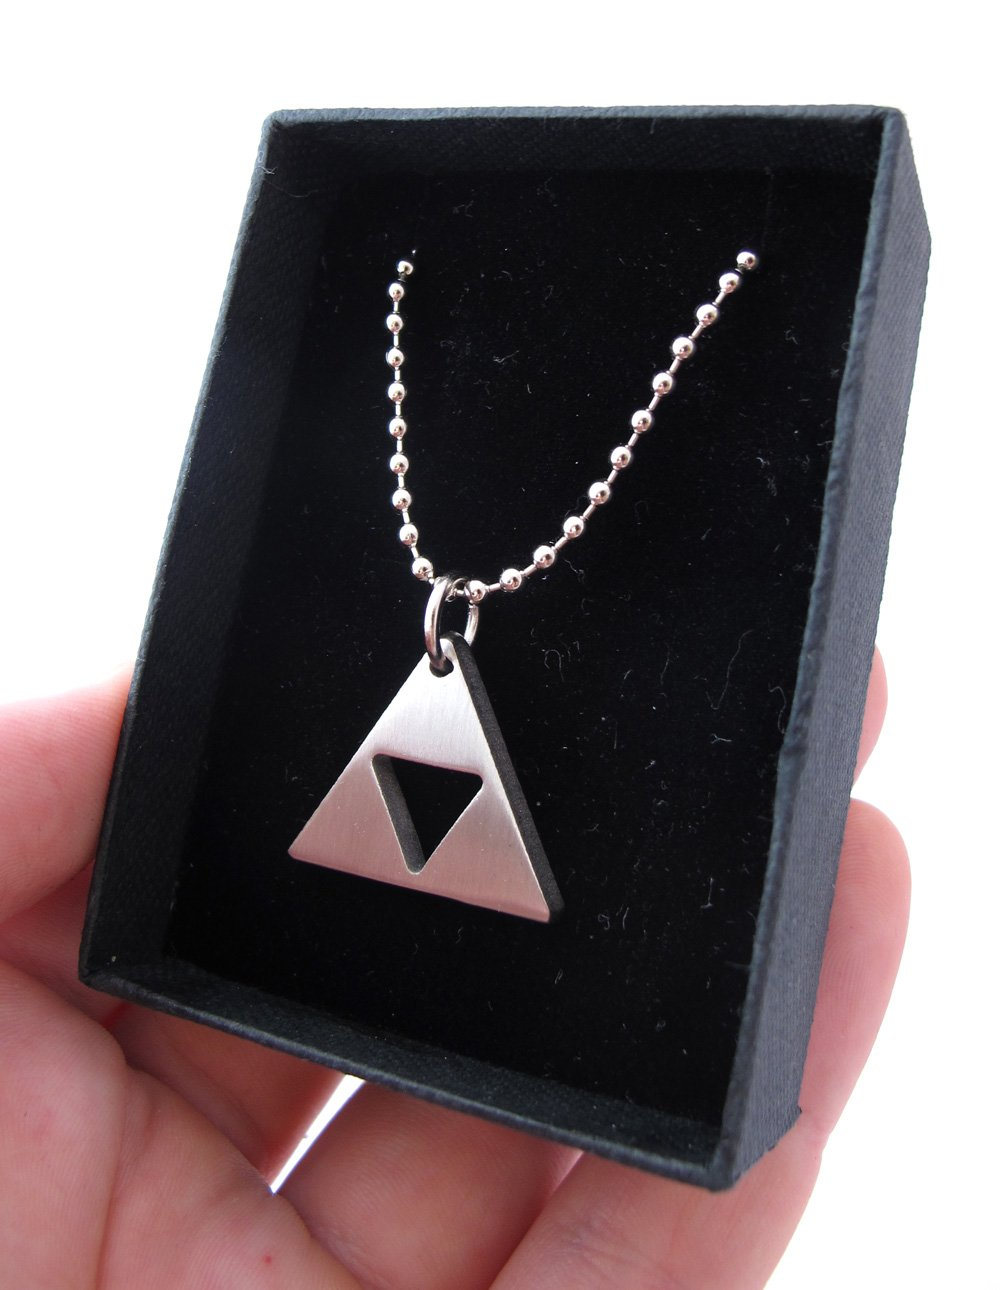 Zelda Triforce Matte Necklace - Stainless Steel by Milkool (Image #6)